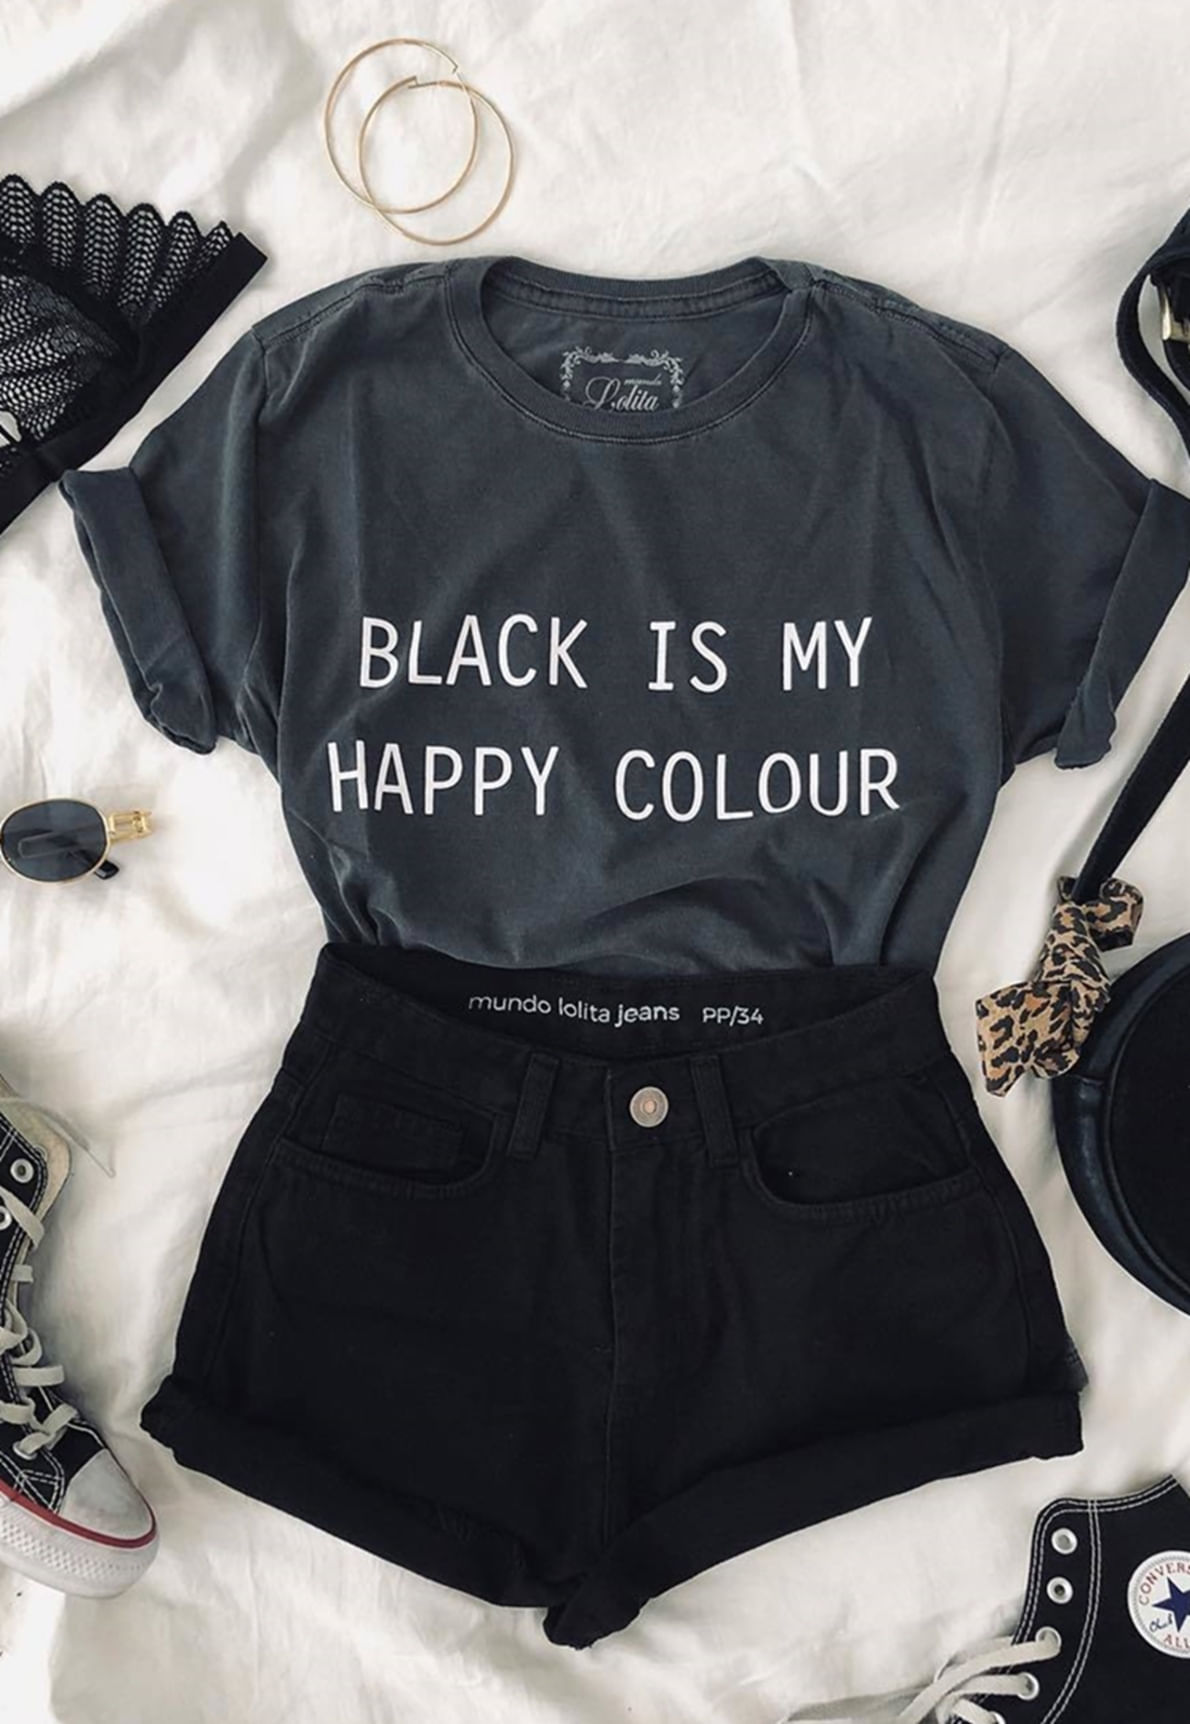 25380-t-shirt-happy-is-my-happy-colour-mundo-lolita-01